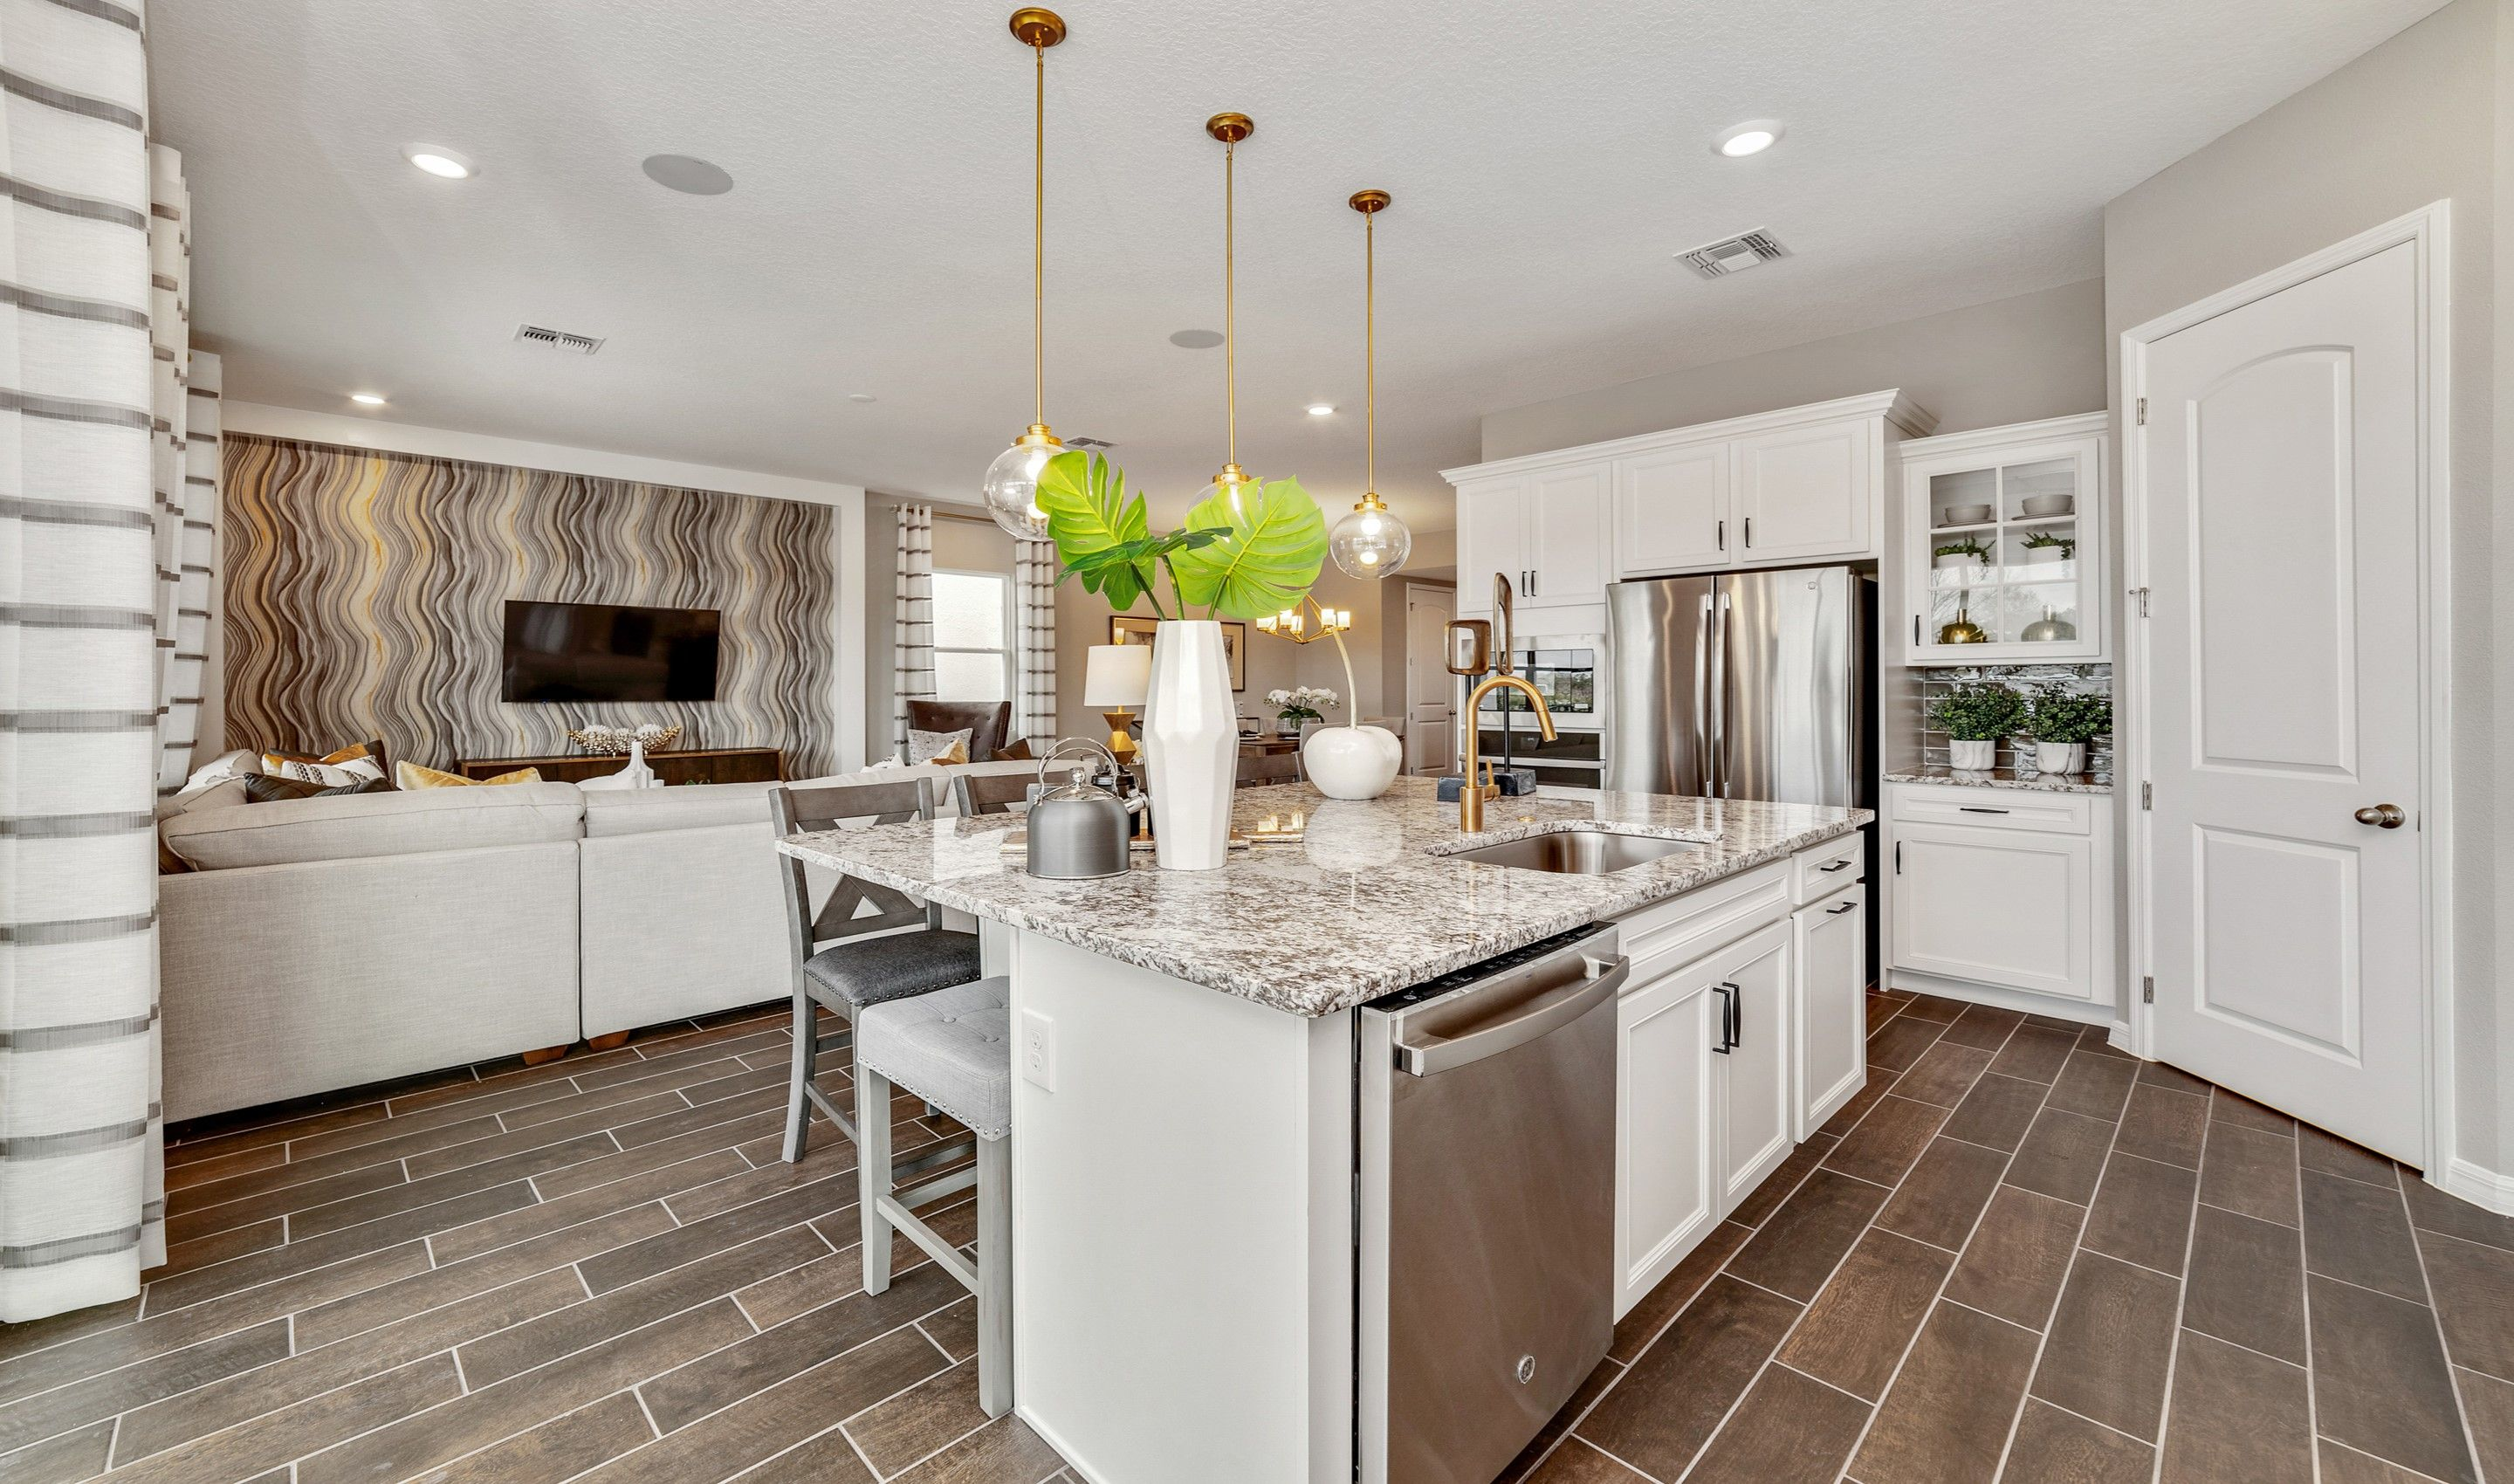 Kitchen featured in the Paloma By K. Hovnanian® Homes in Orlando, FL